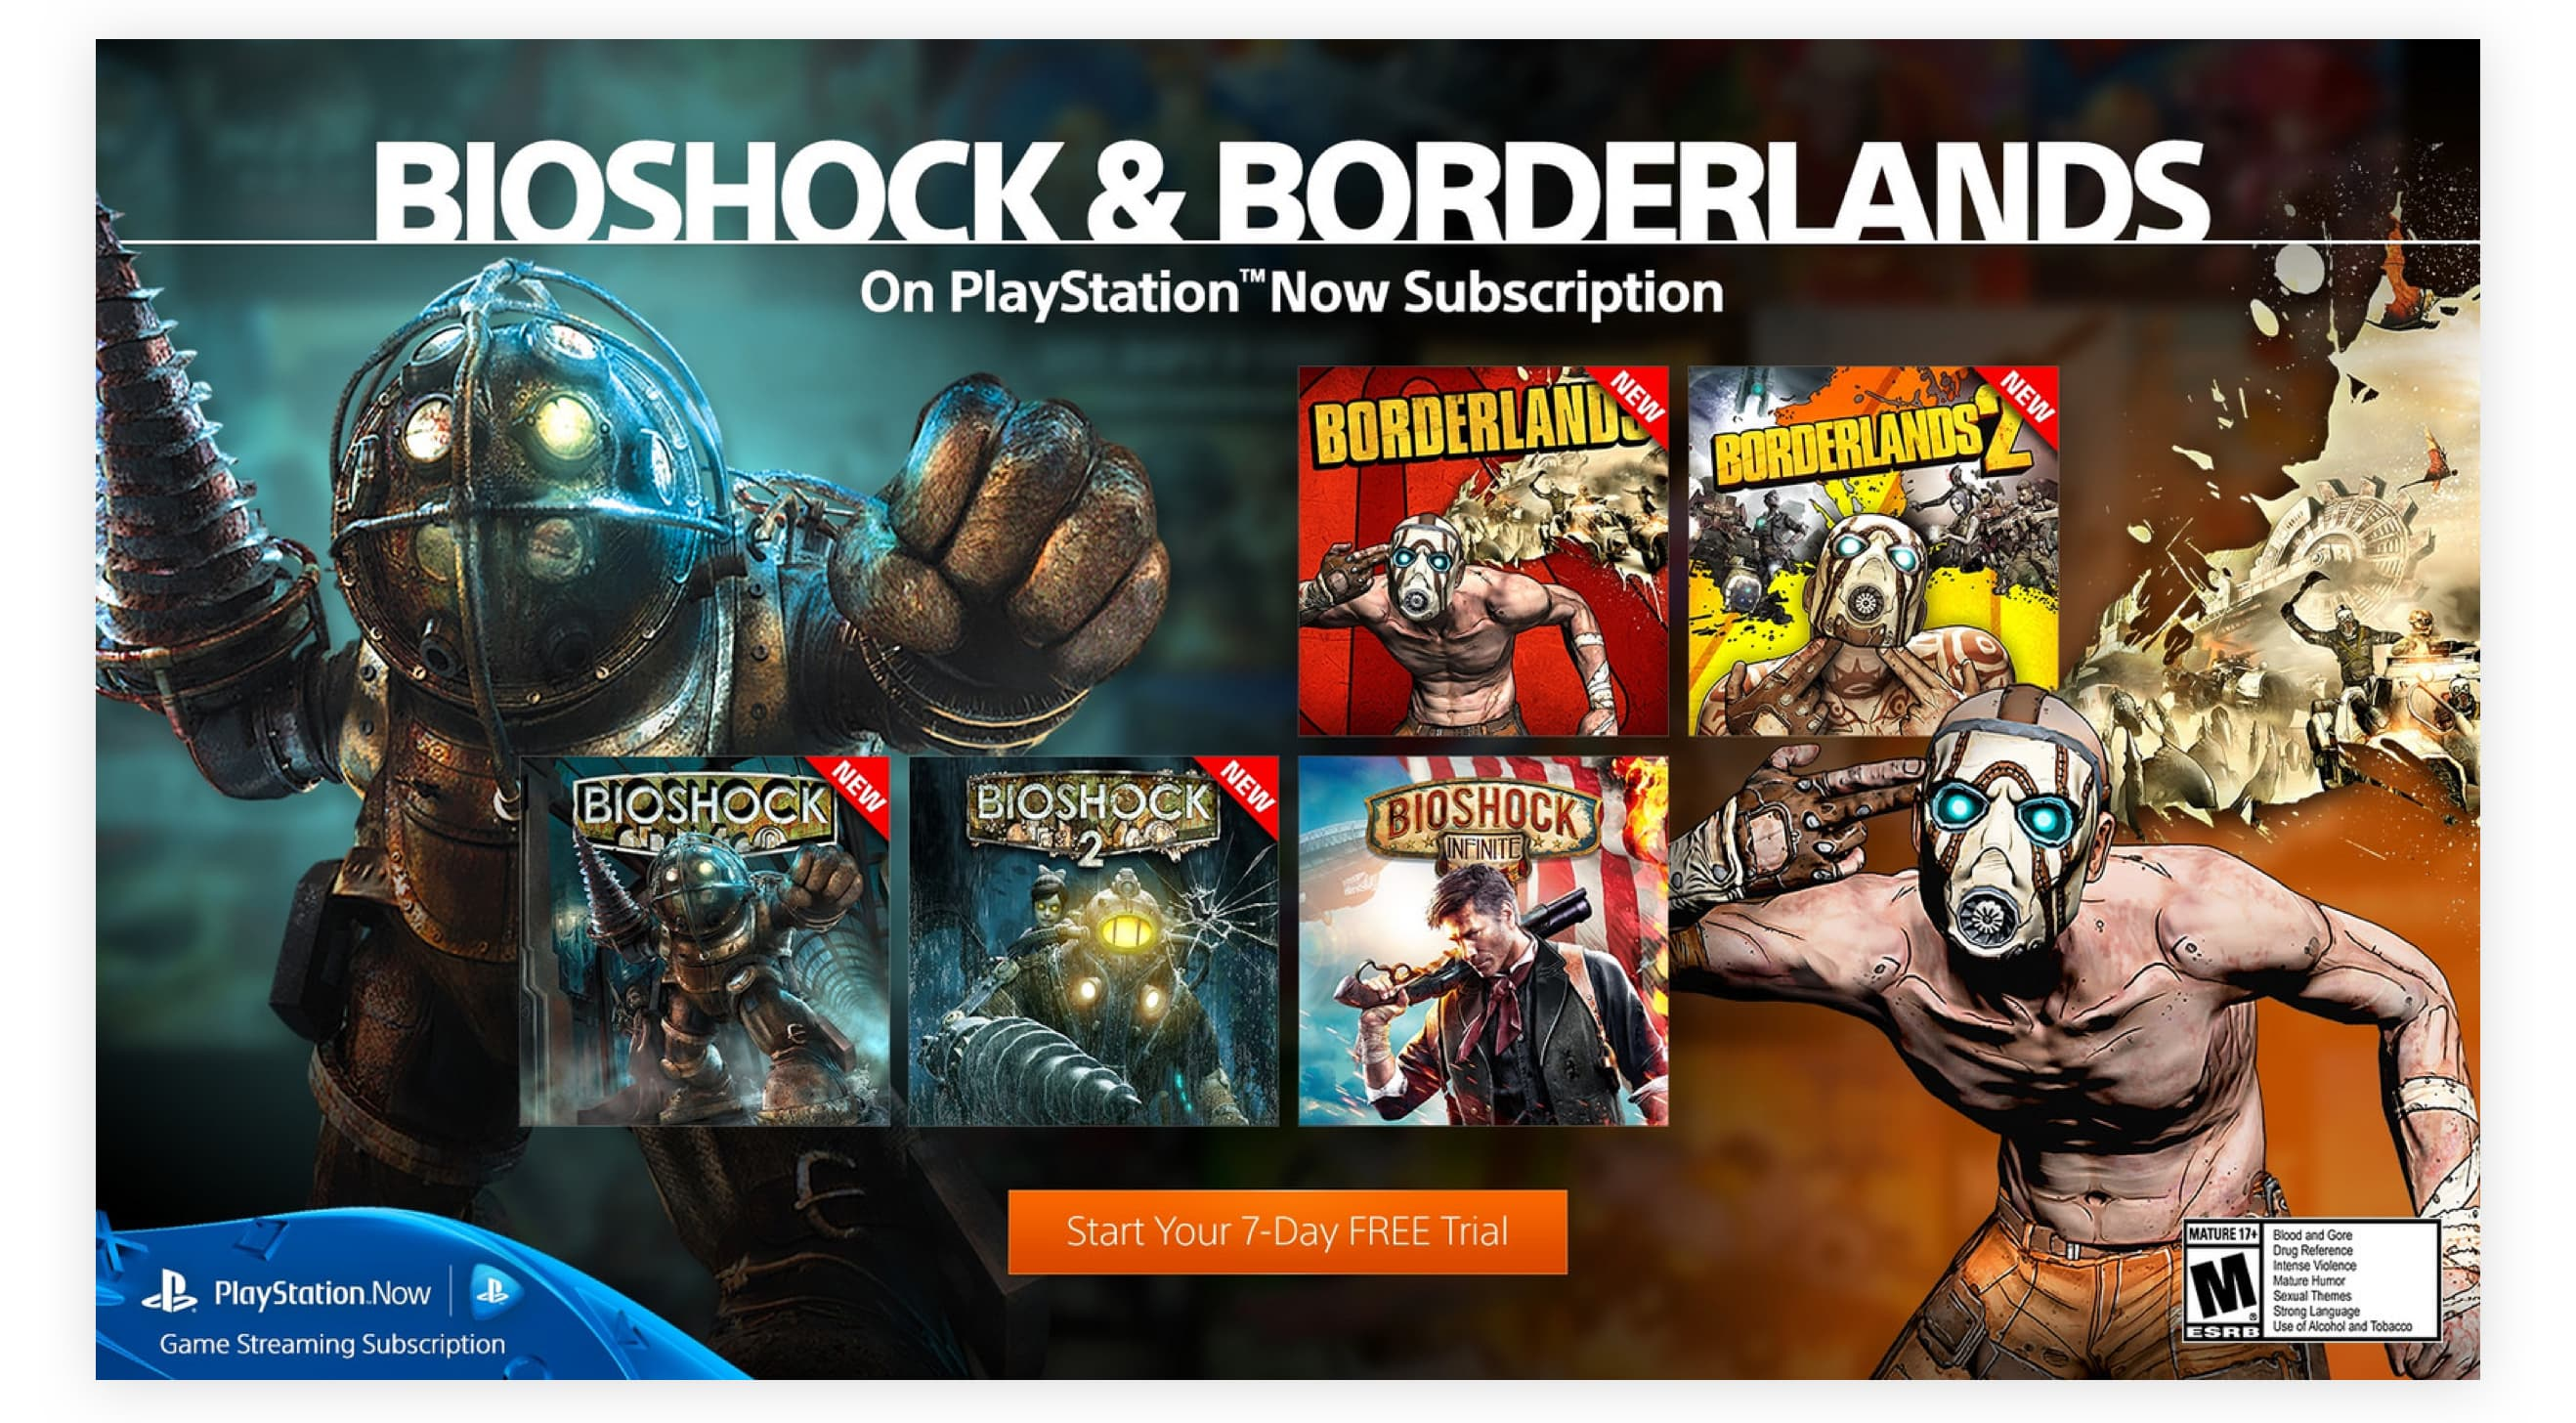 Bioshock and Borderlands